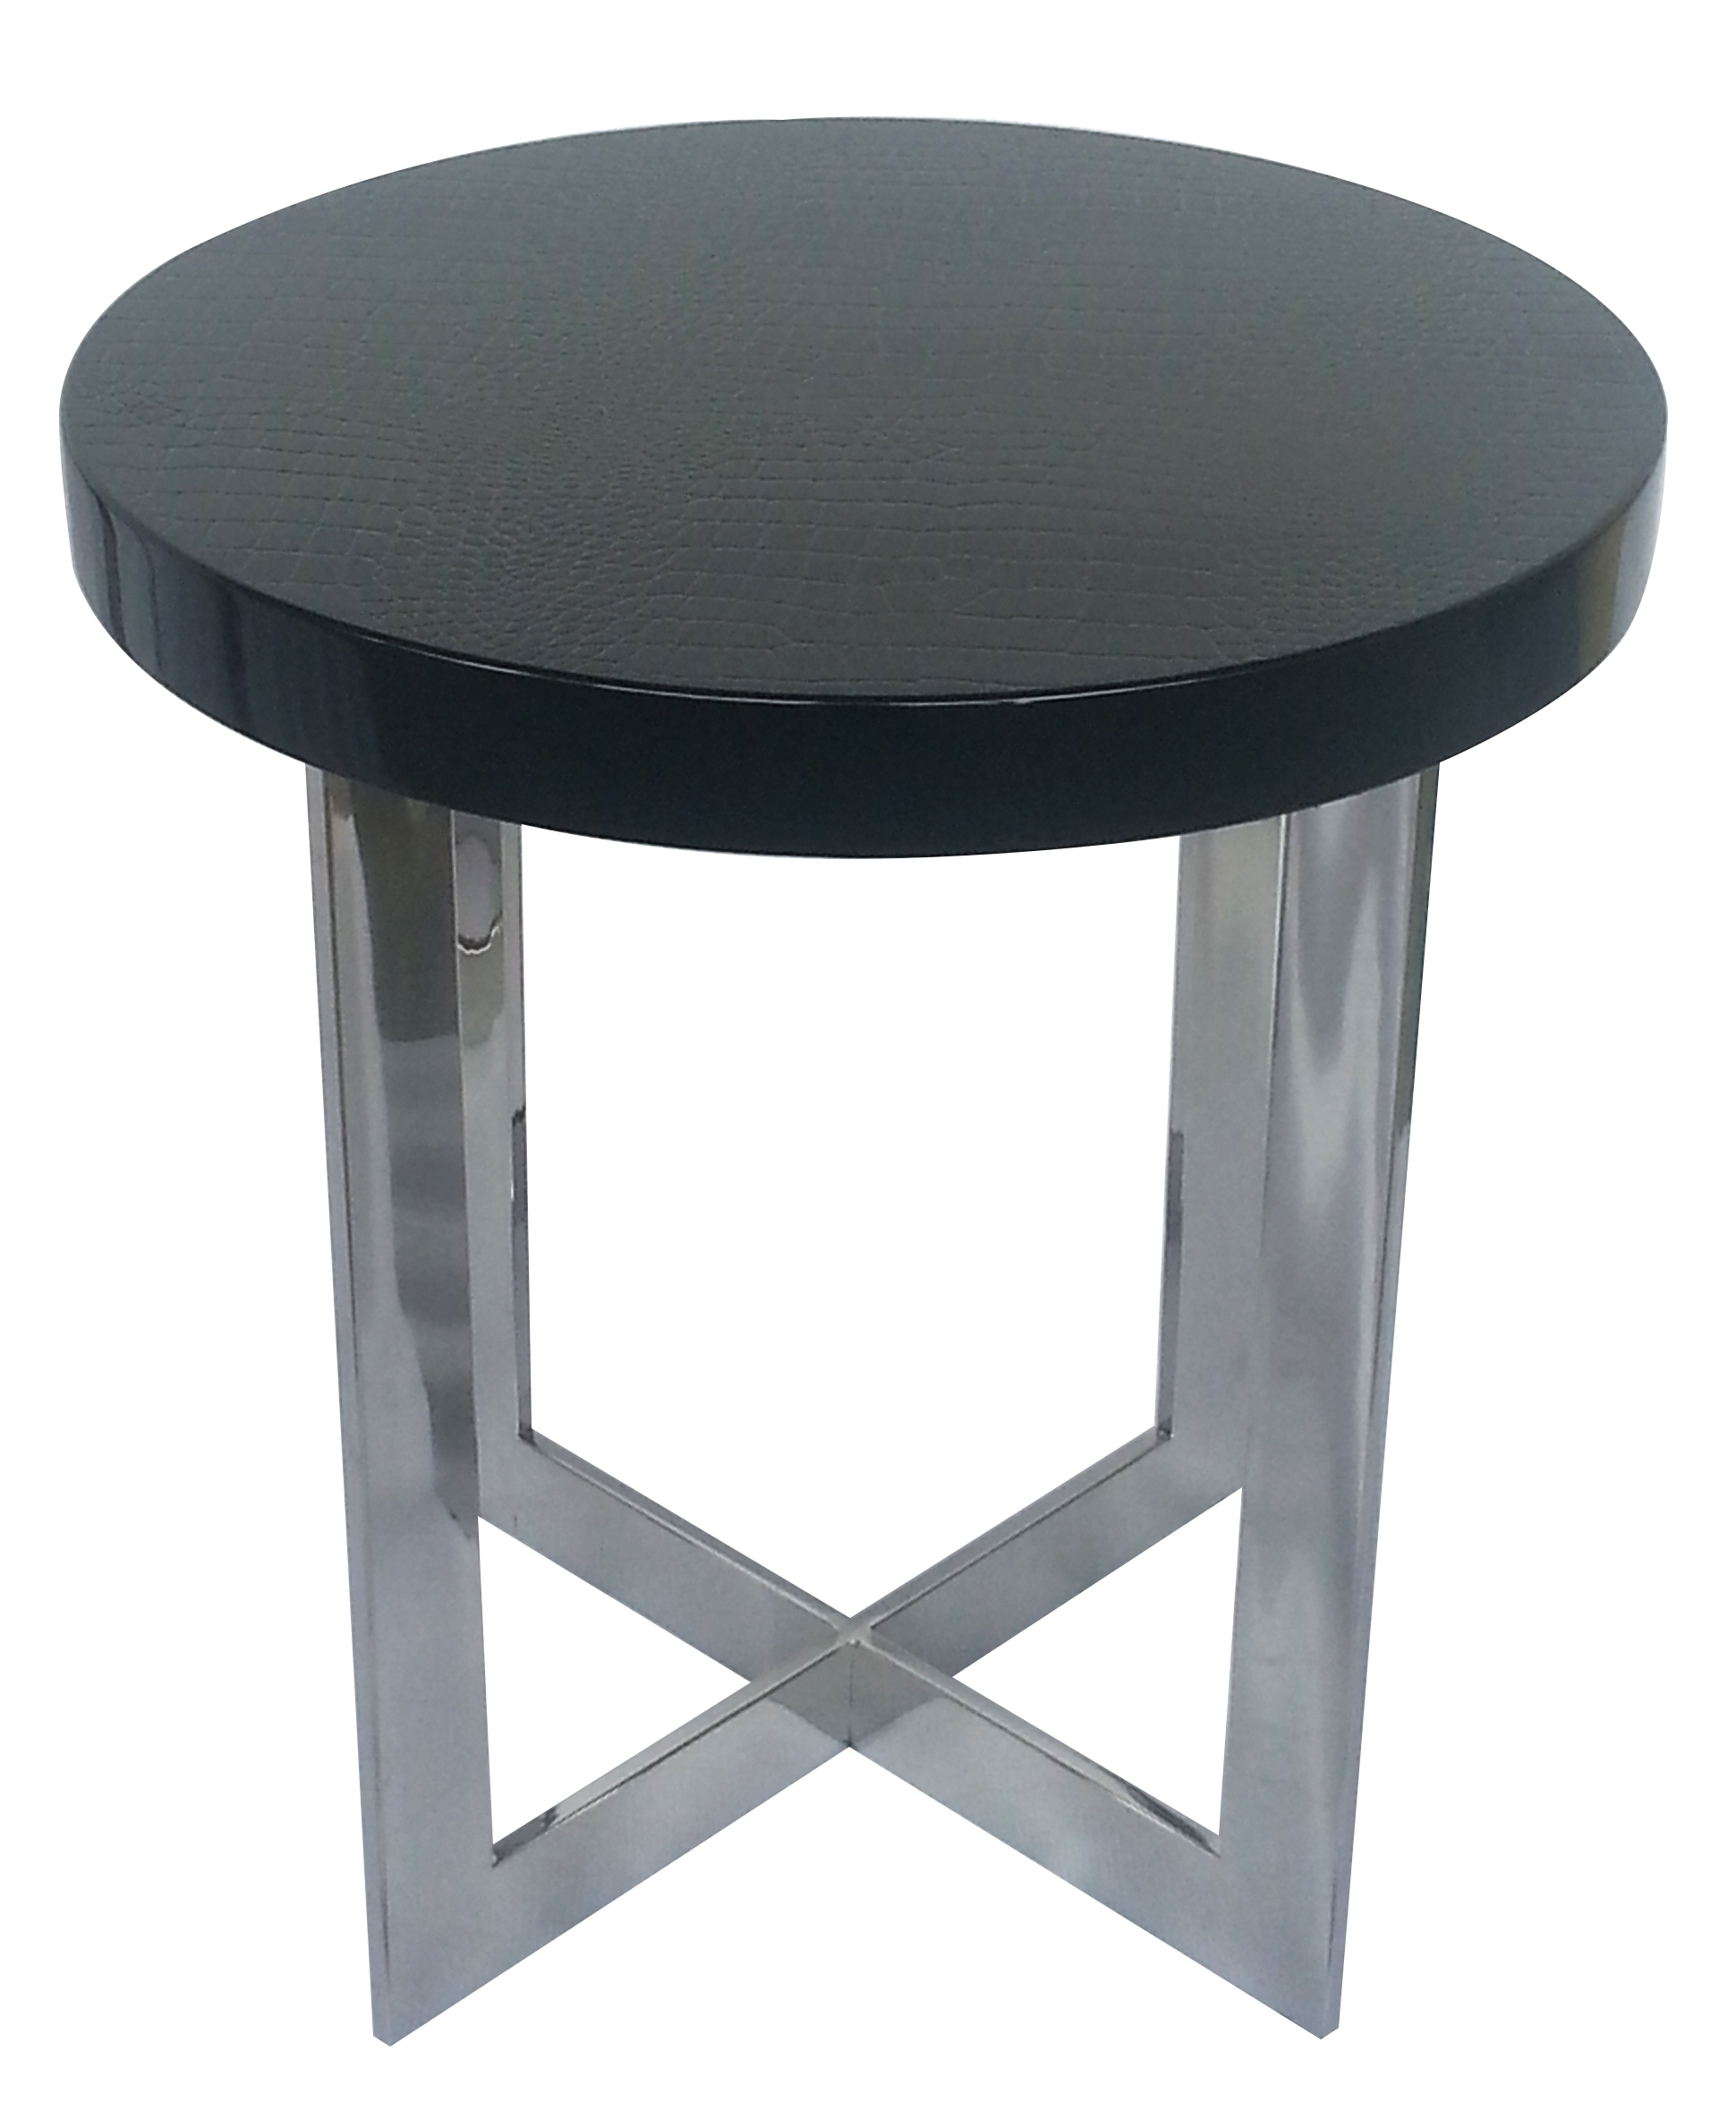 Regan Coffee Table Black